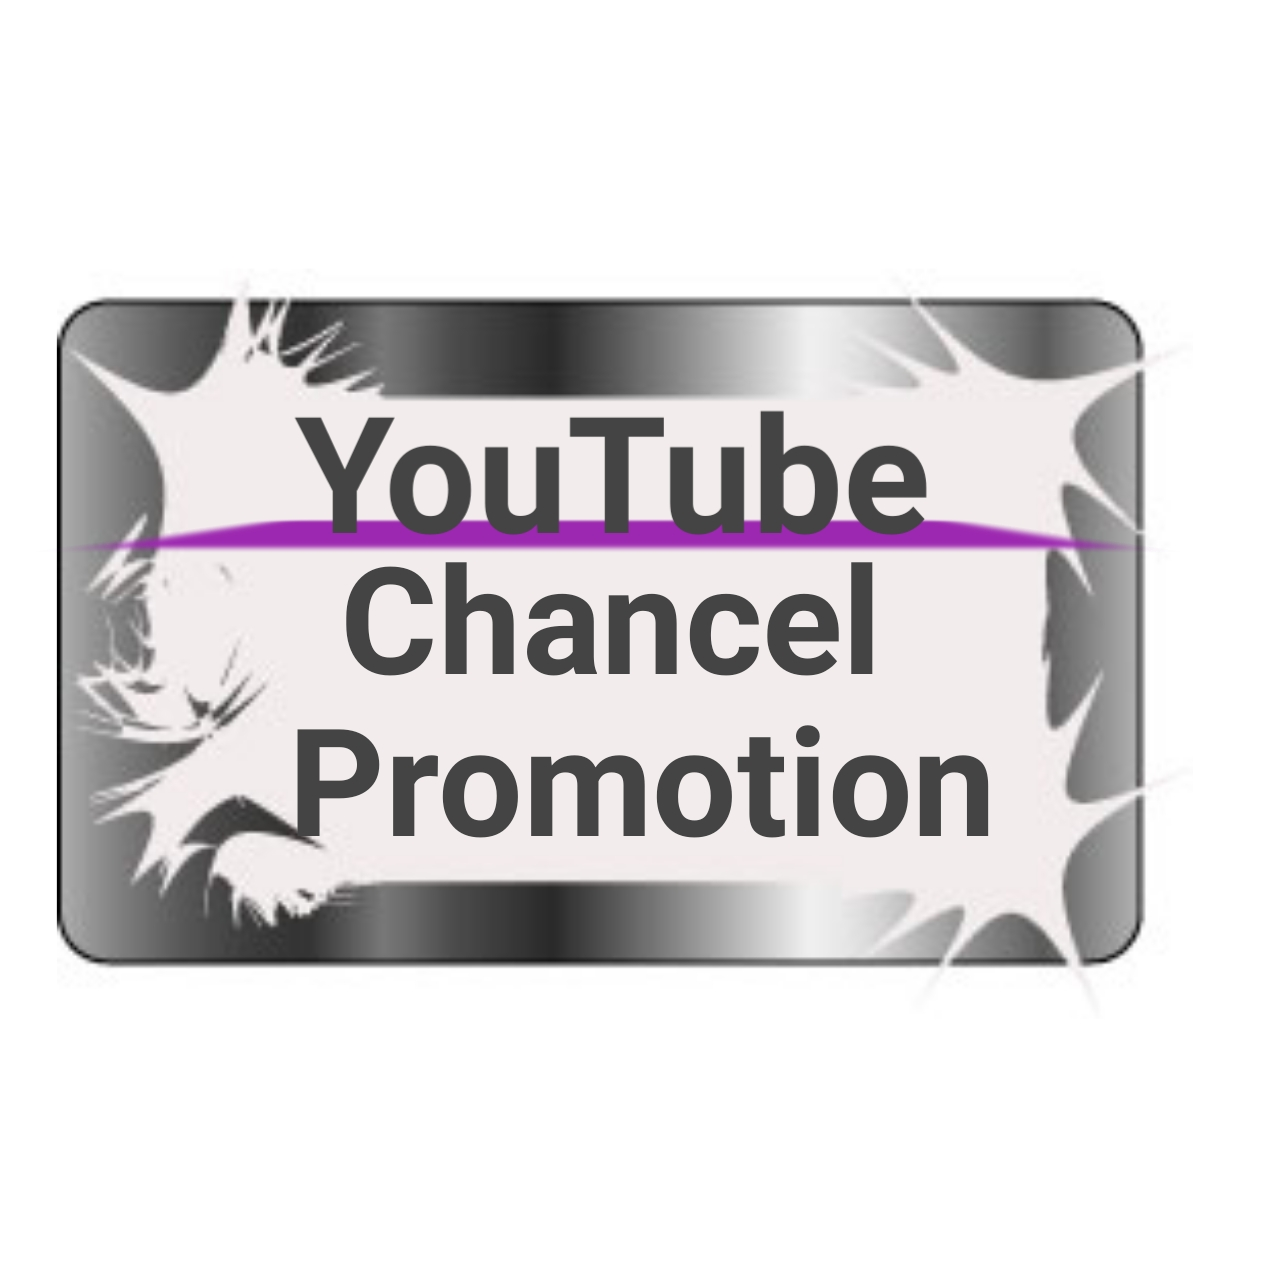 YouTube Chancel promotion and Marketing